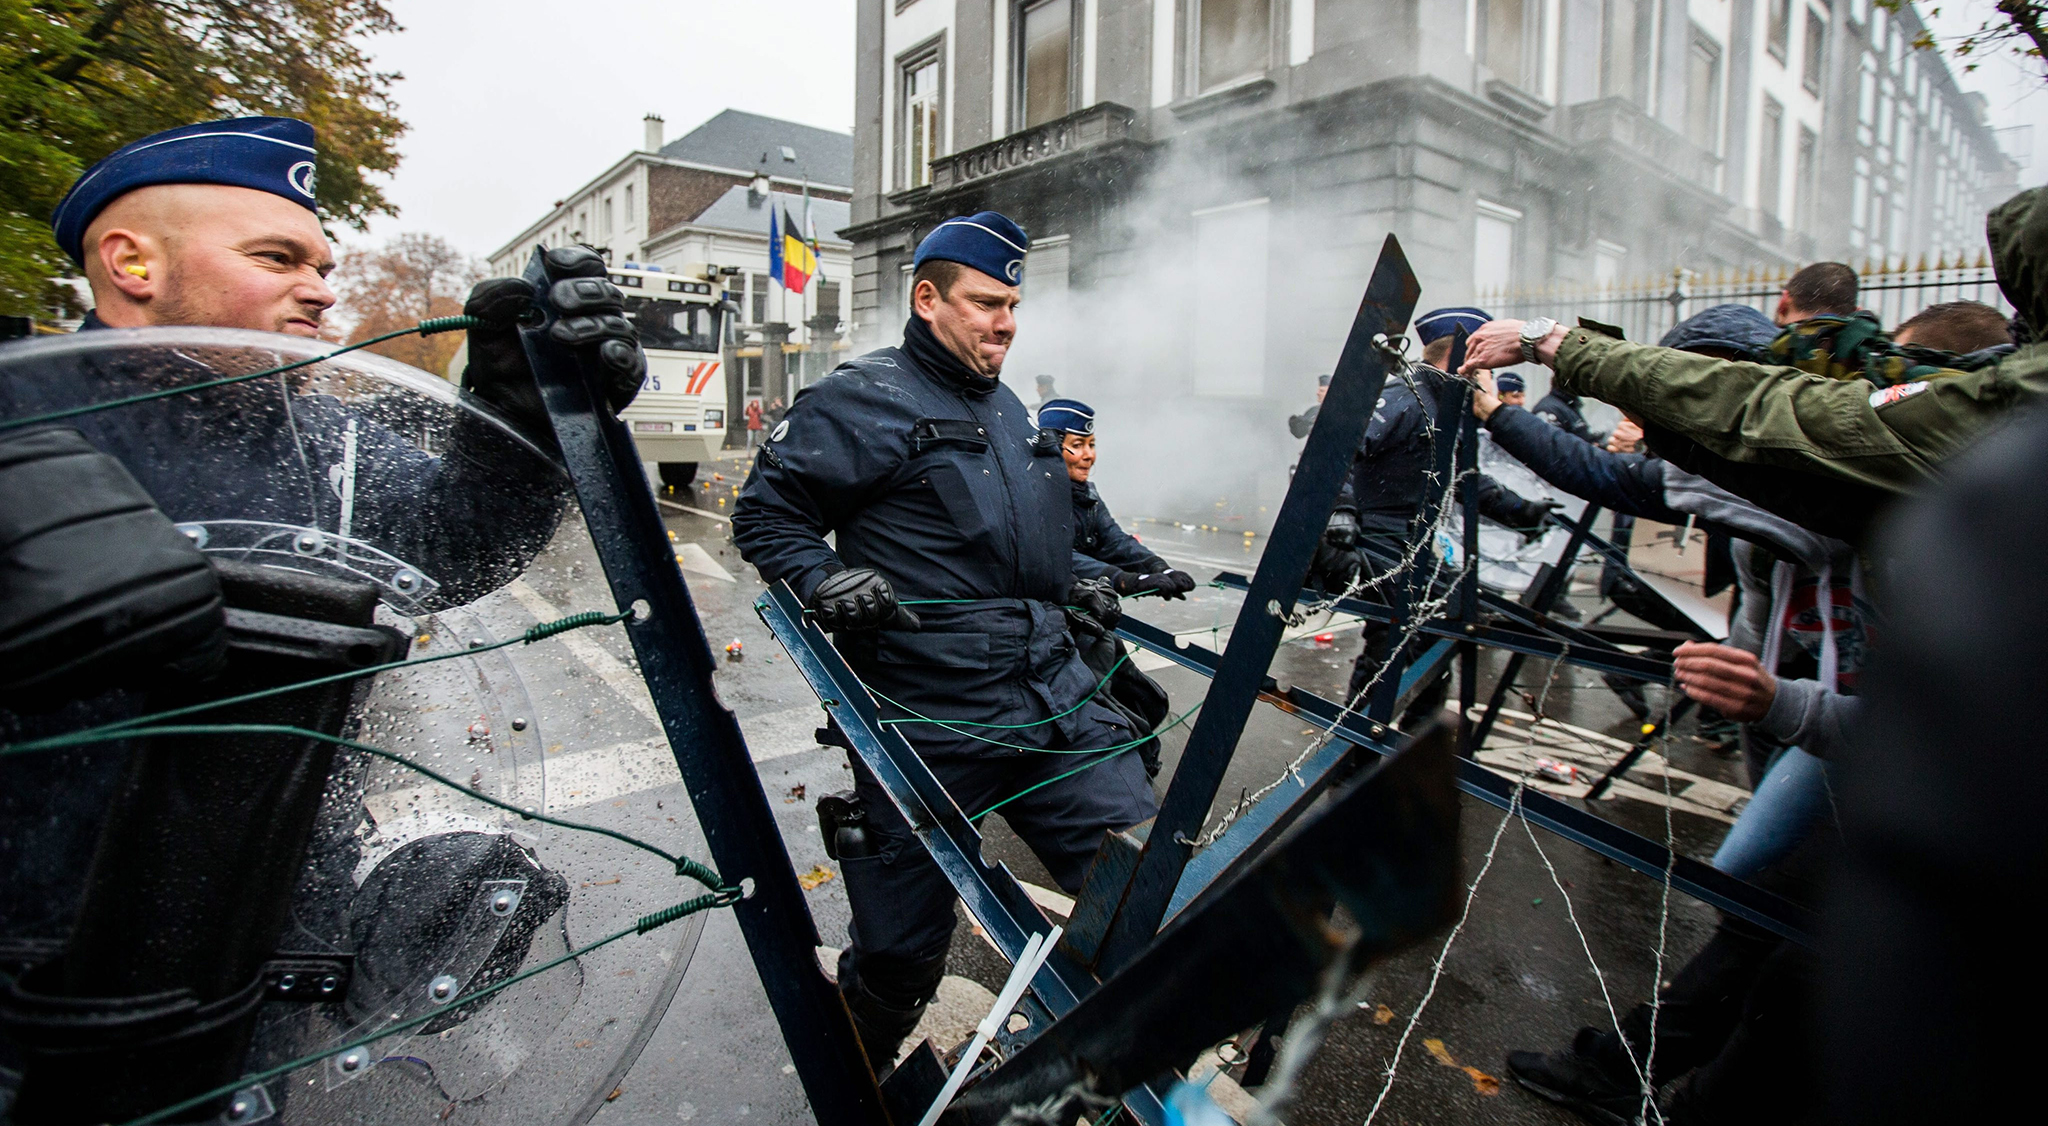 Military personnel confront police during a protest against the reform of their pension scheme in Brussels, Belgium, 15 November 2016. The military personnel demonstrate on the day of the King's feast to express their dissatisfaction with the reform of their pension scheme.  EPA/STEPHANIE LECOCQ